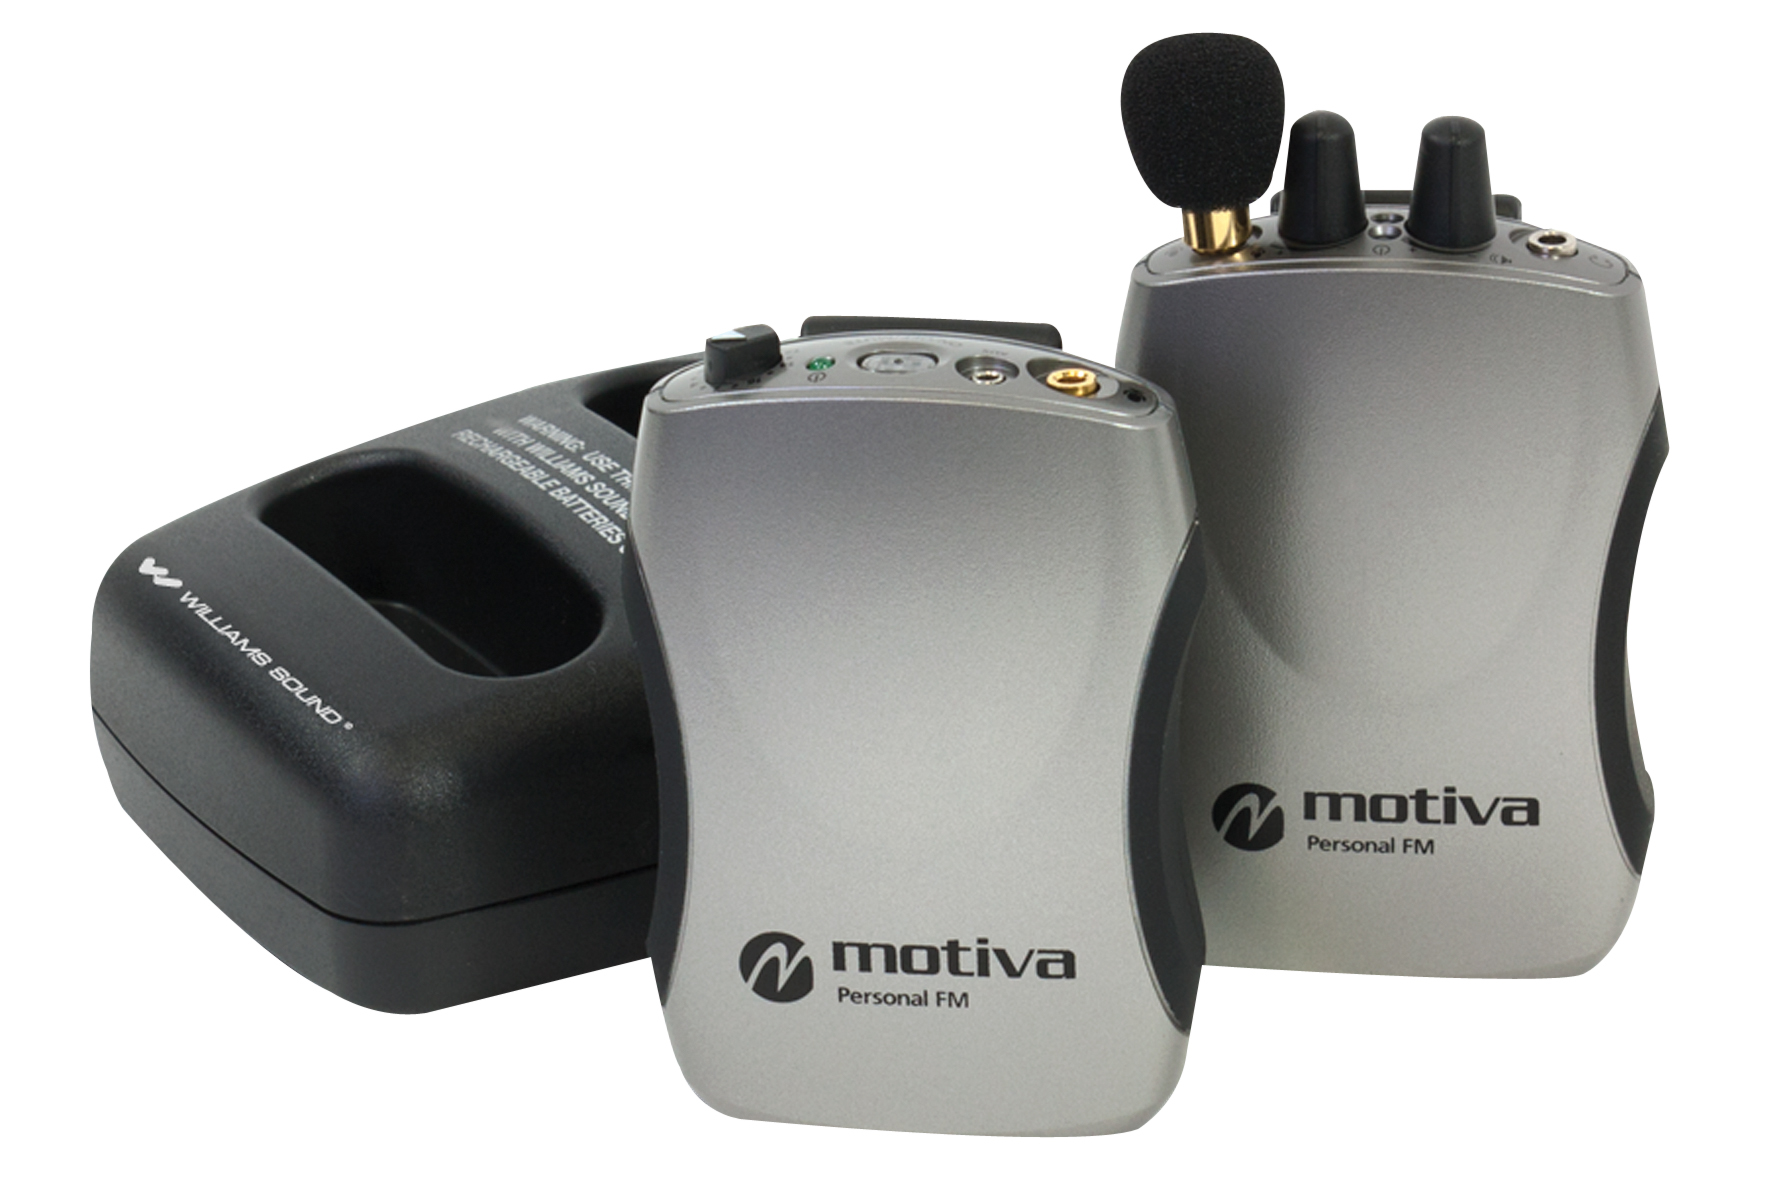 The Motiva Personal Amplification and FM system eliminates background noise and makes voices clearer in a variety of settings.